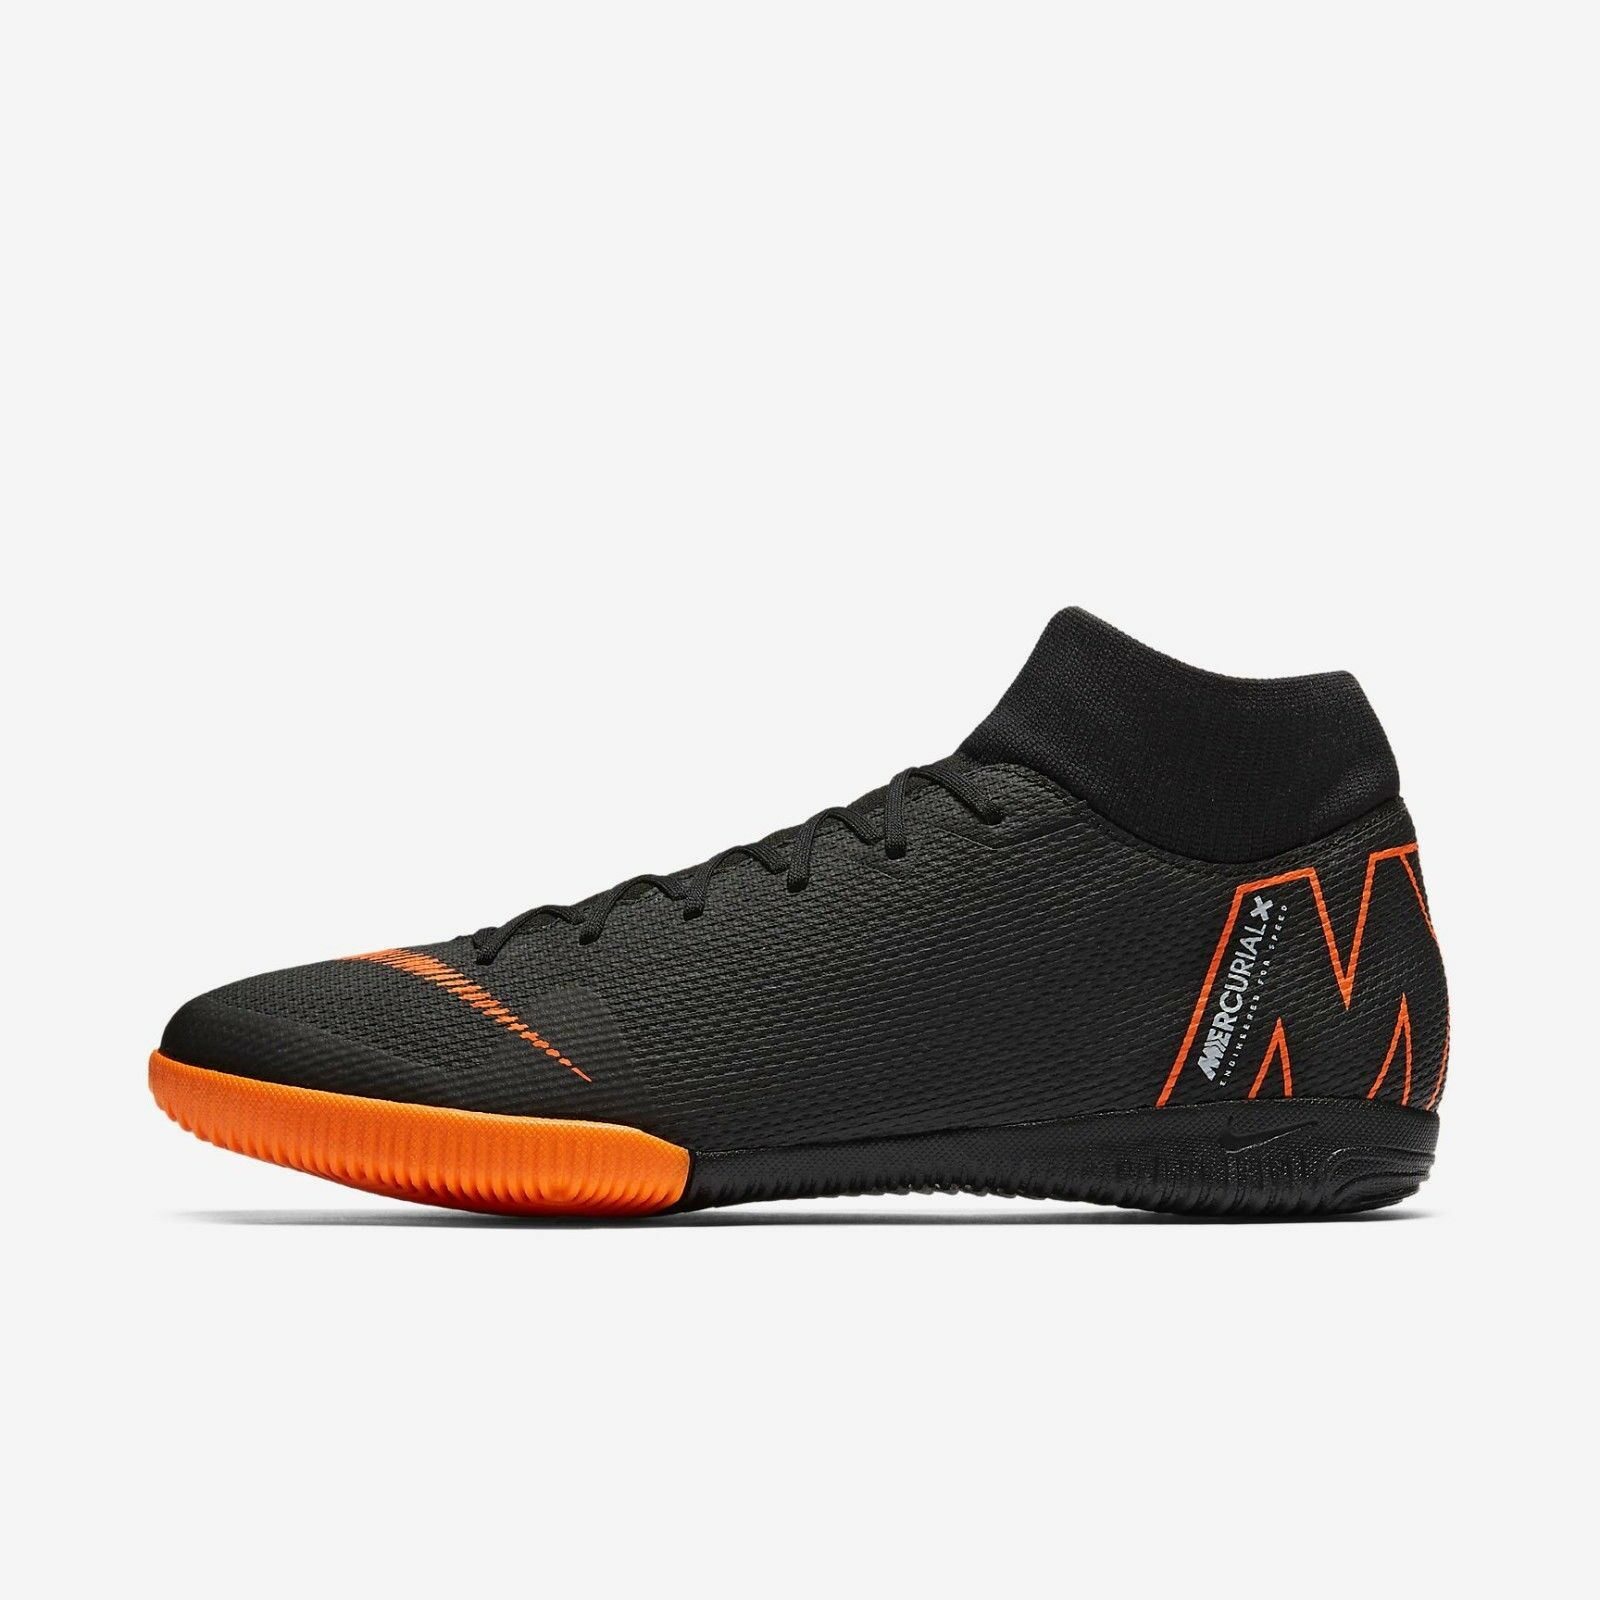 Cheap and beautiful fashion SuperflyX 6 Academy IC Black/Total Orange White AH7369 081 Comfortable